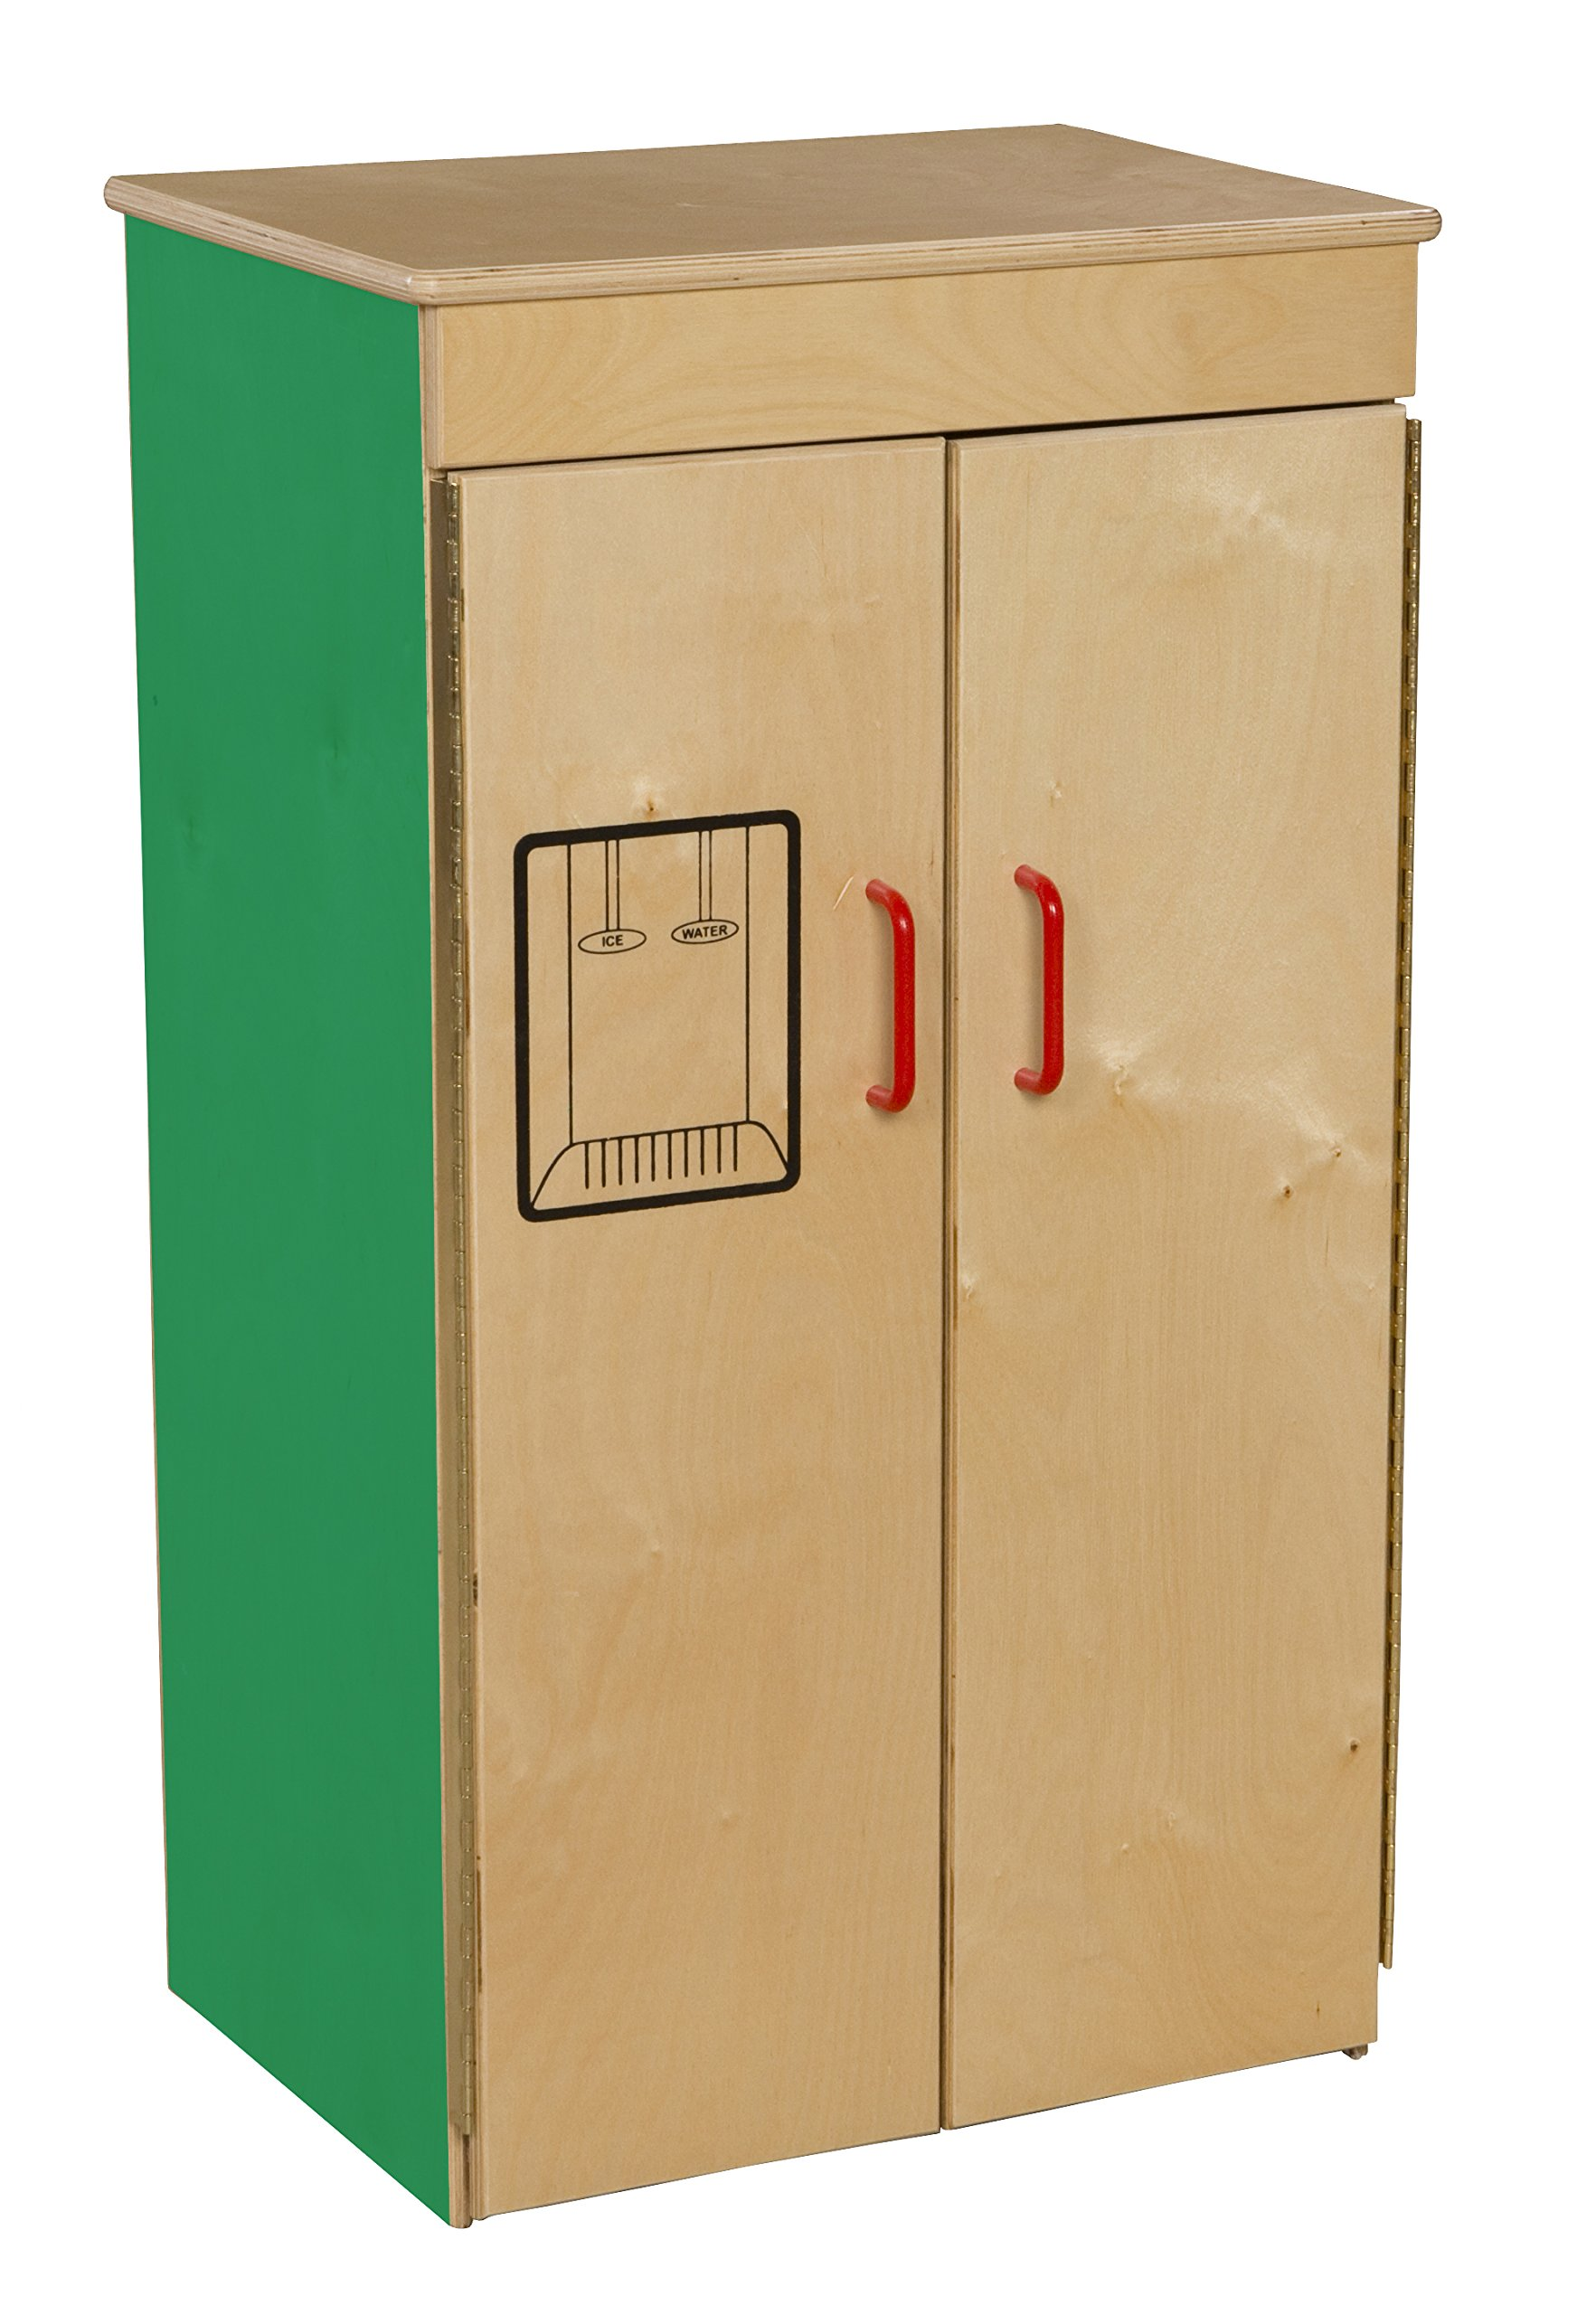 Healthy Kids Colors WD10400G Green Apple Refrigerator